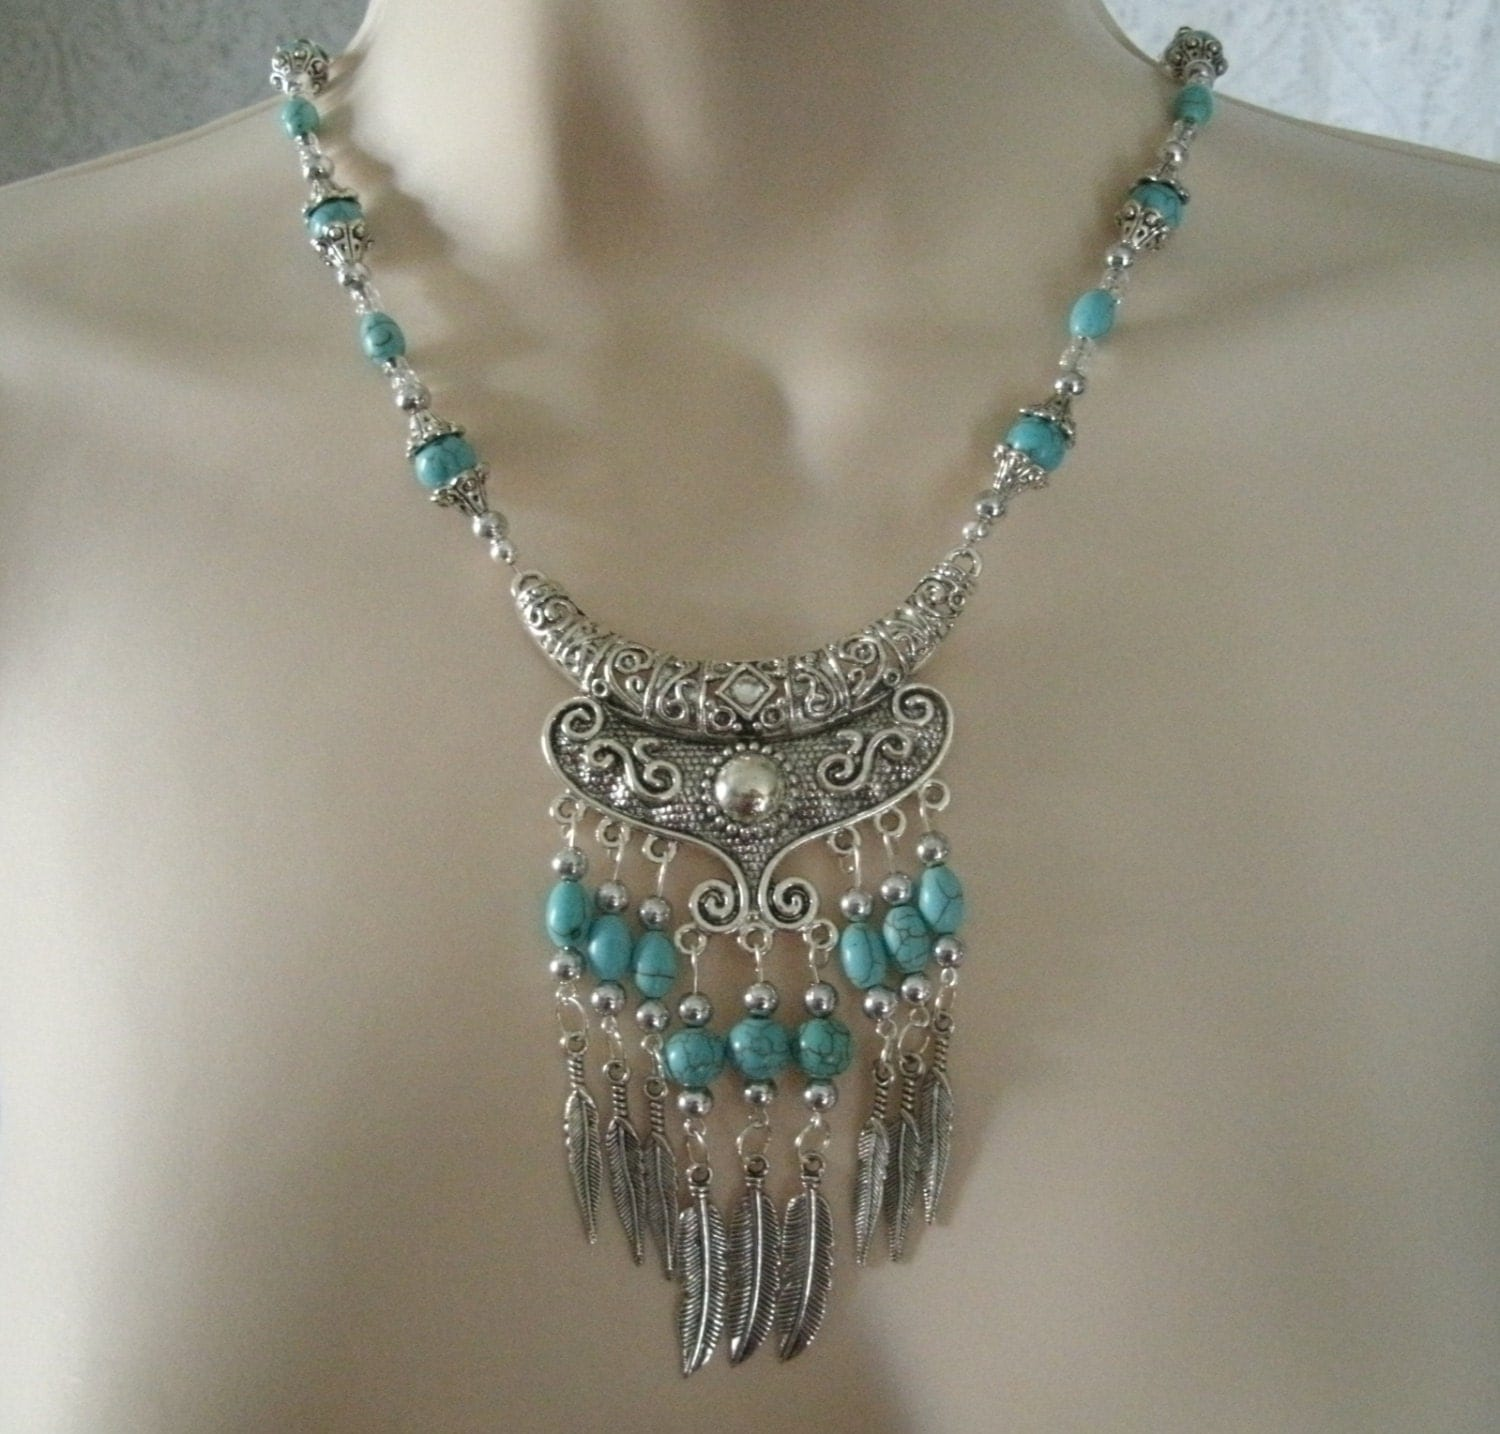 Turquoise necklace southwestern jewelry southwest jewelry for How to make american indian jewelry